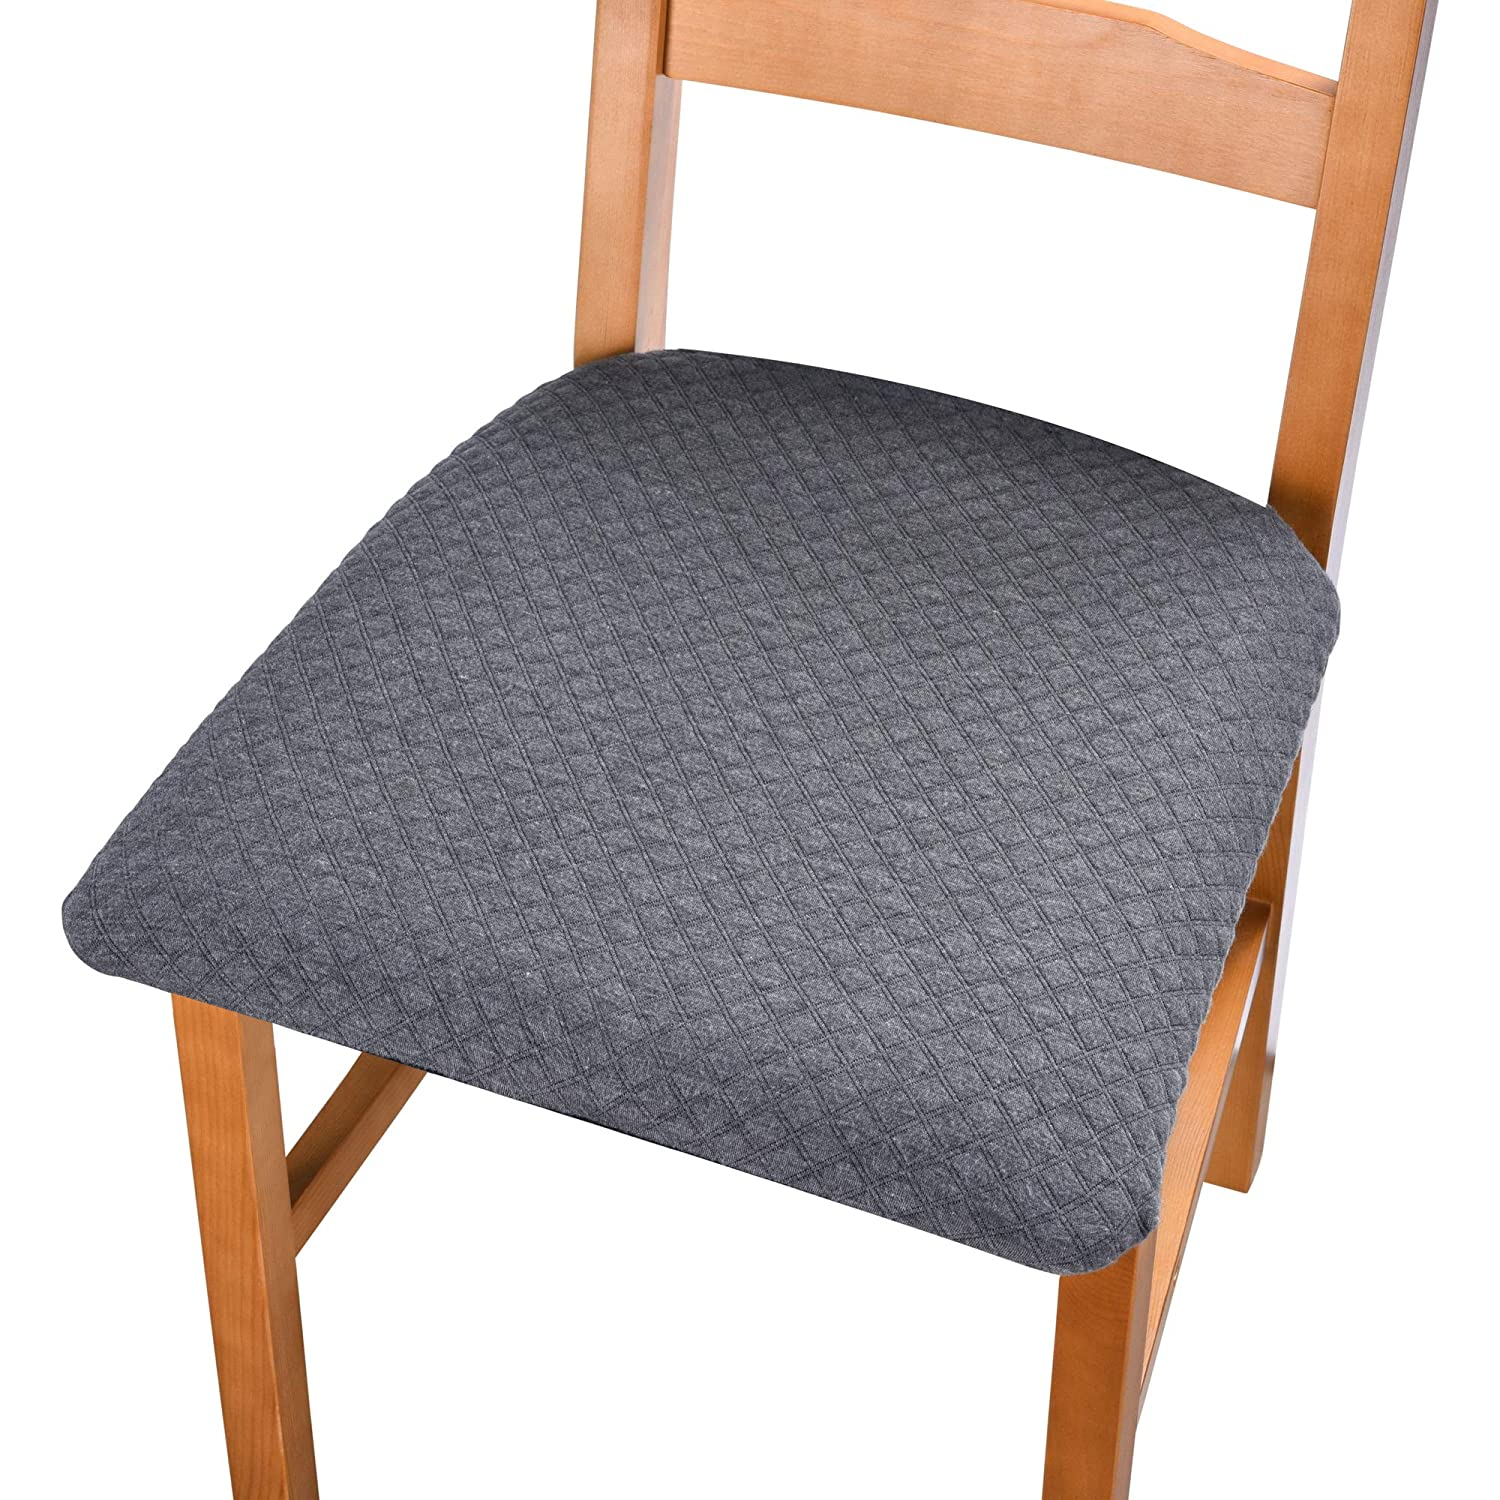 Stratissu Premium Dining Room Chair Seat Covers - Works for Kitchen, Bar, Office Computer Desk or Table Chairs, Cushion Cover - Resistent and Washable with Strings for Non Slip - Dark Gray (Set of 4)